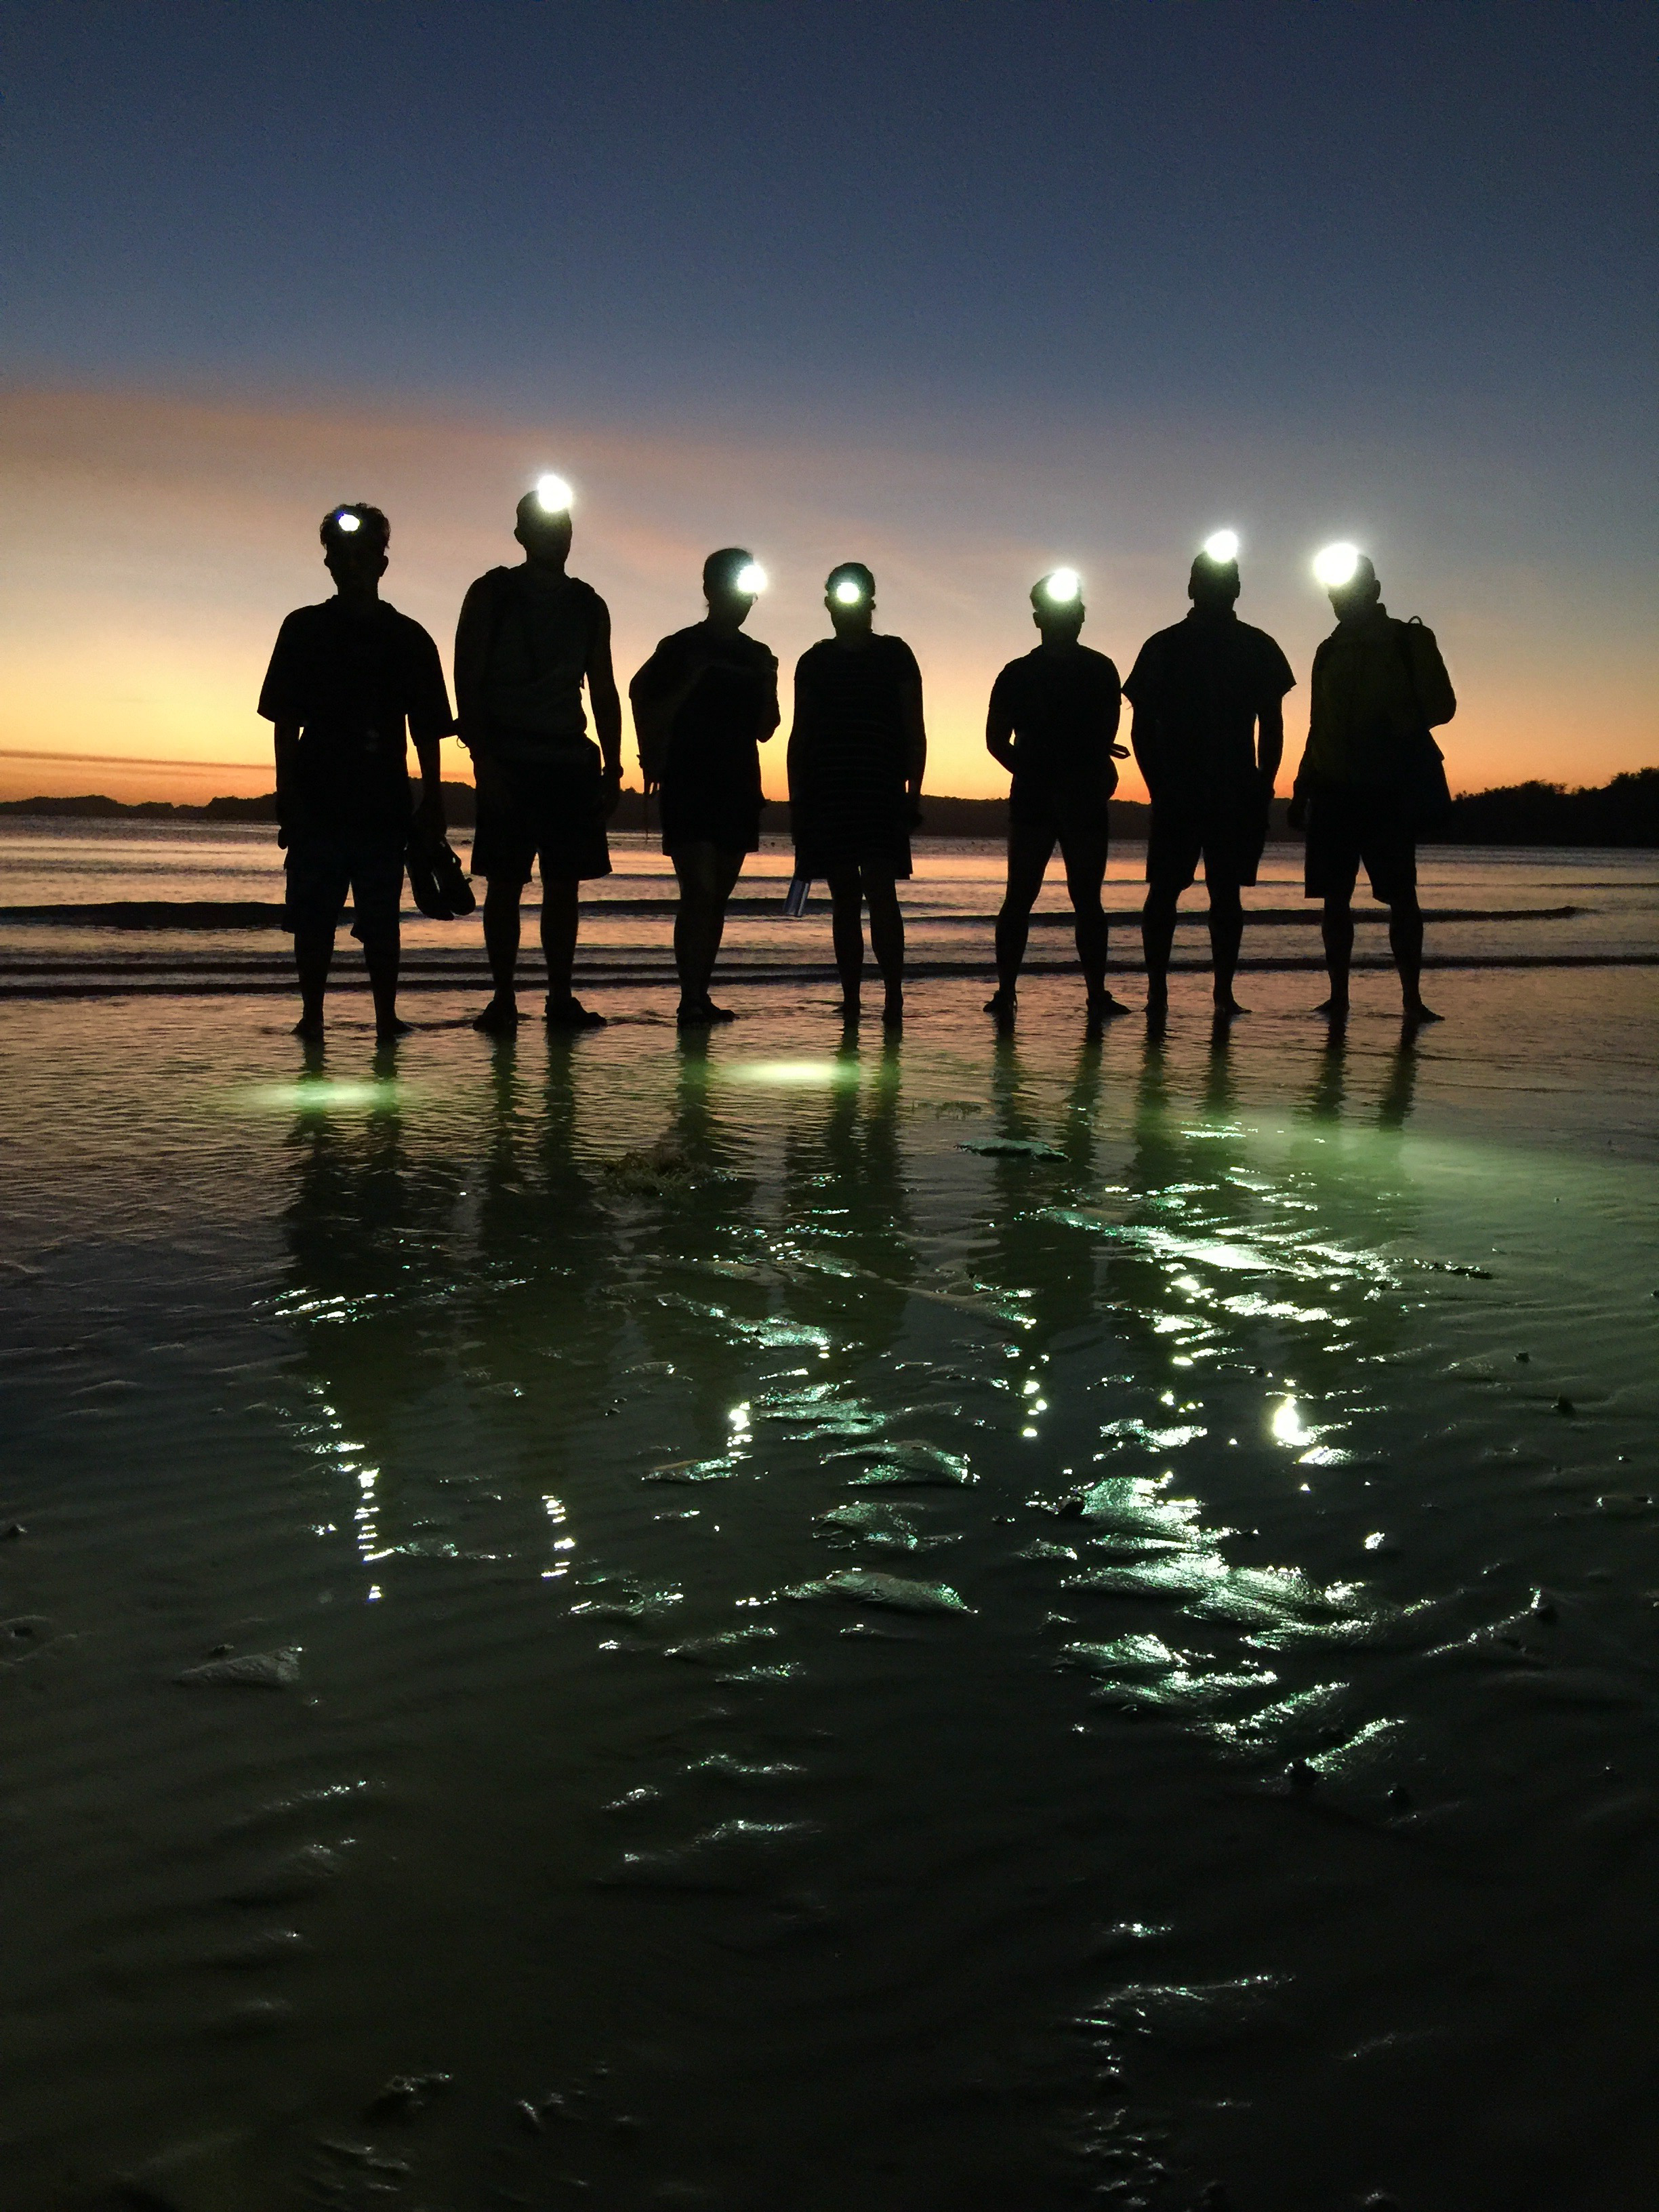 The team poses with their headlamps in front of the backdrop of a typical awe-inspiring sunset off the coast of Ilin Island.